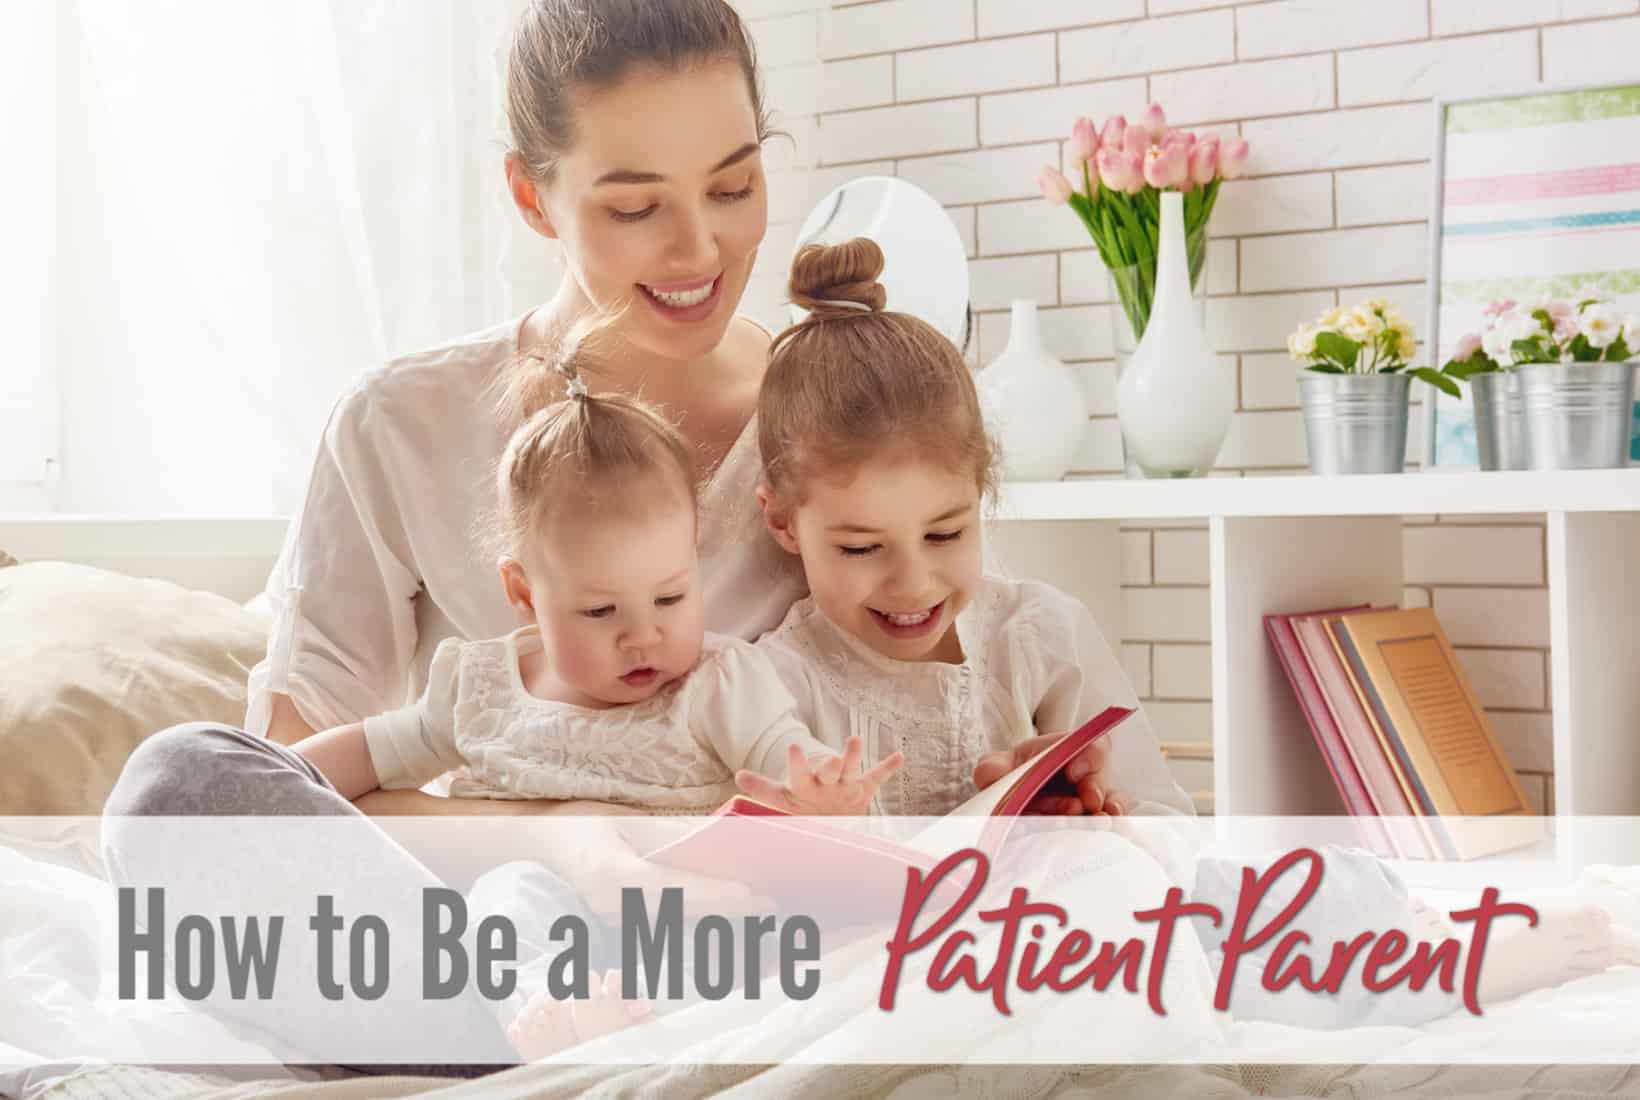 patient parent, calm mom, patience